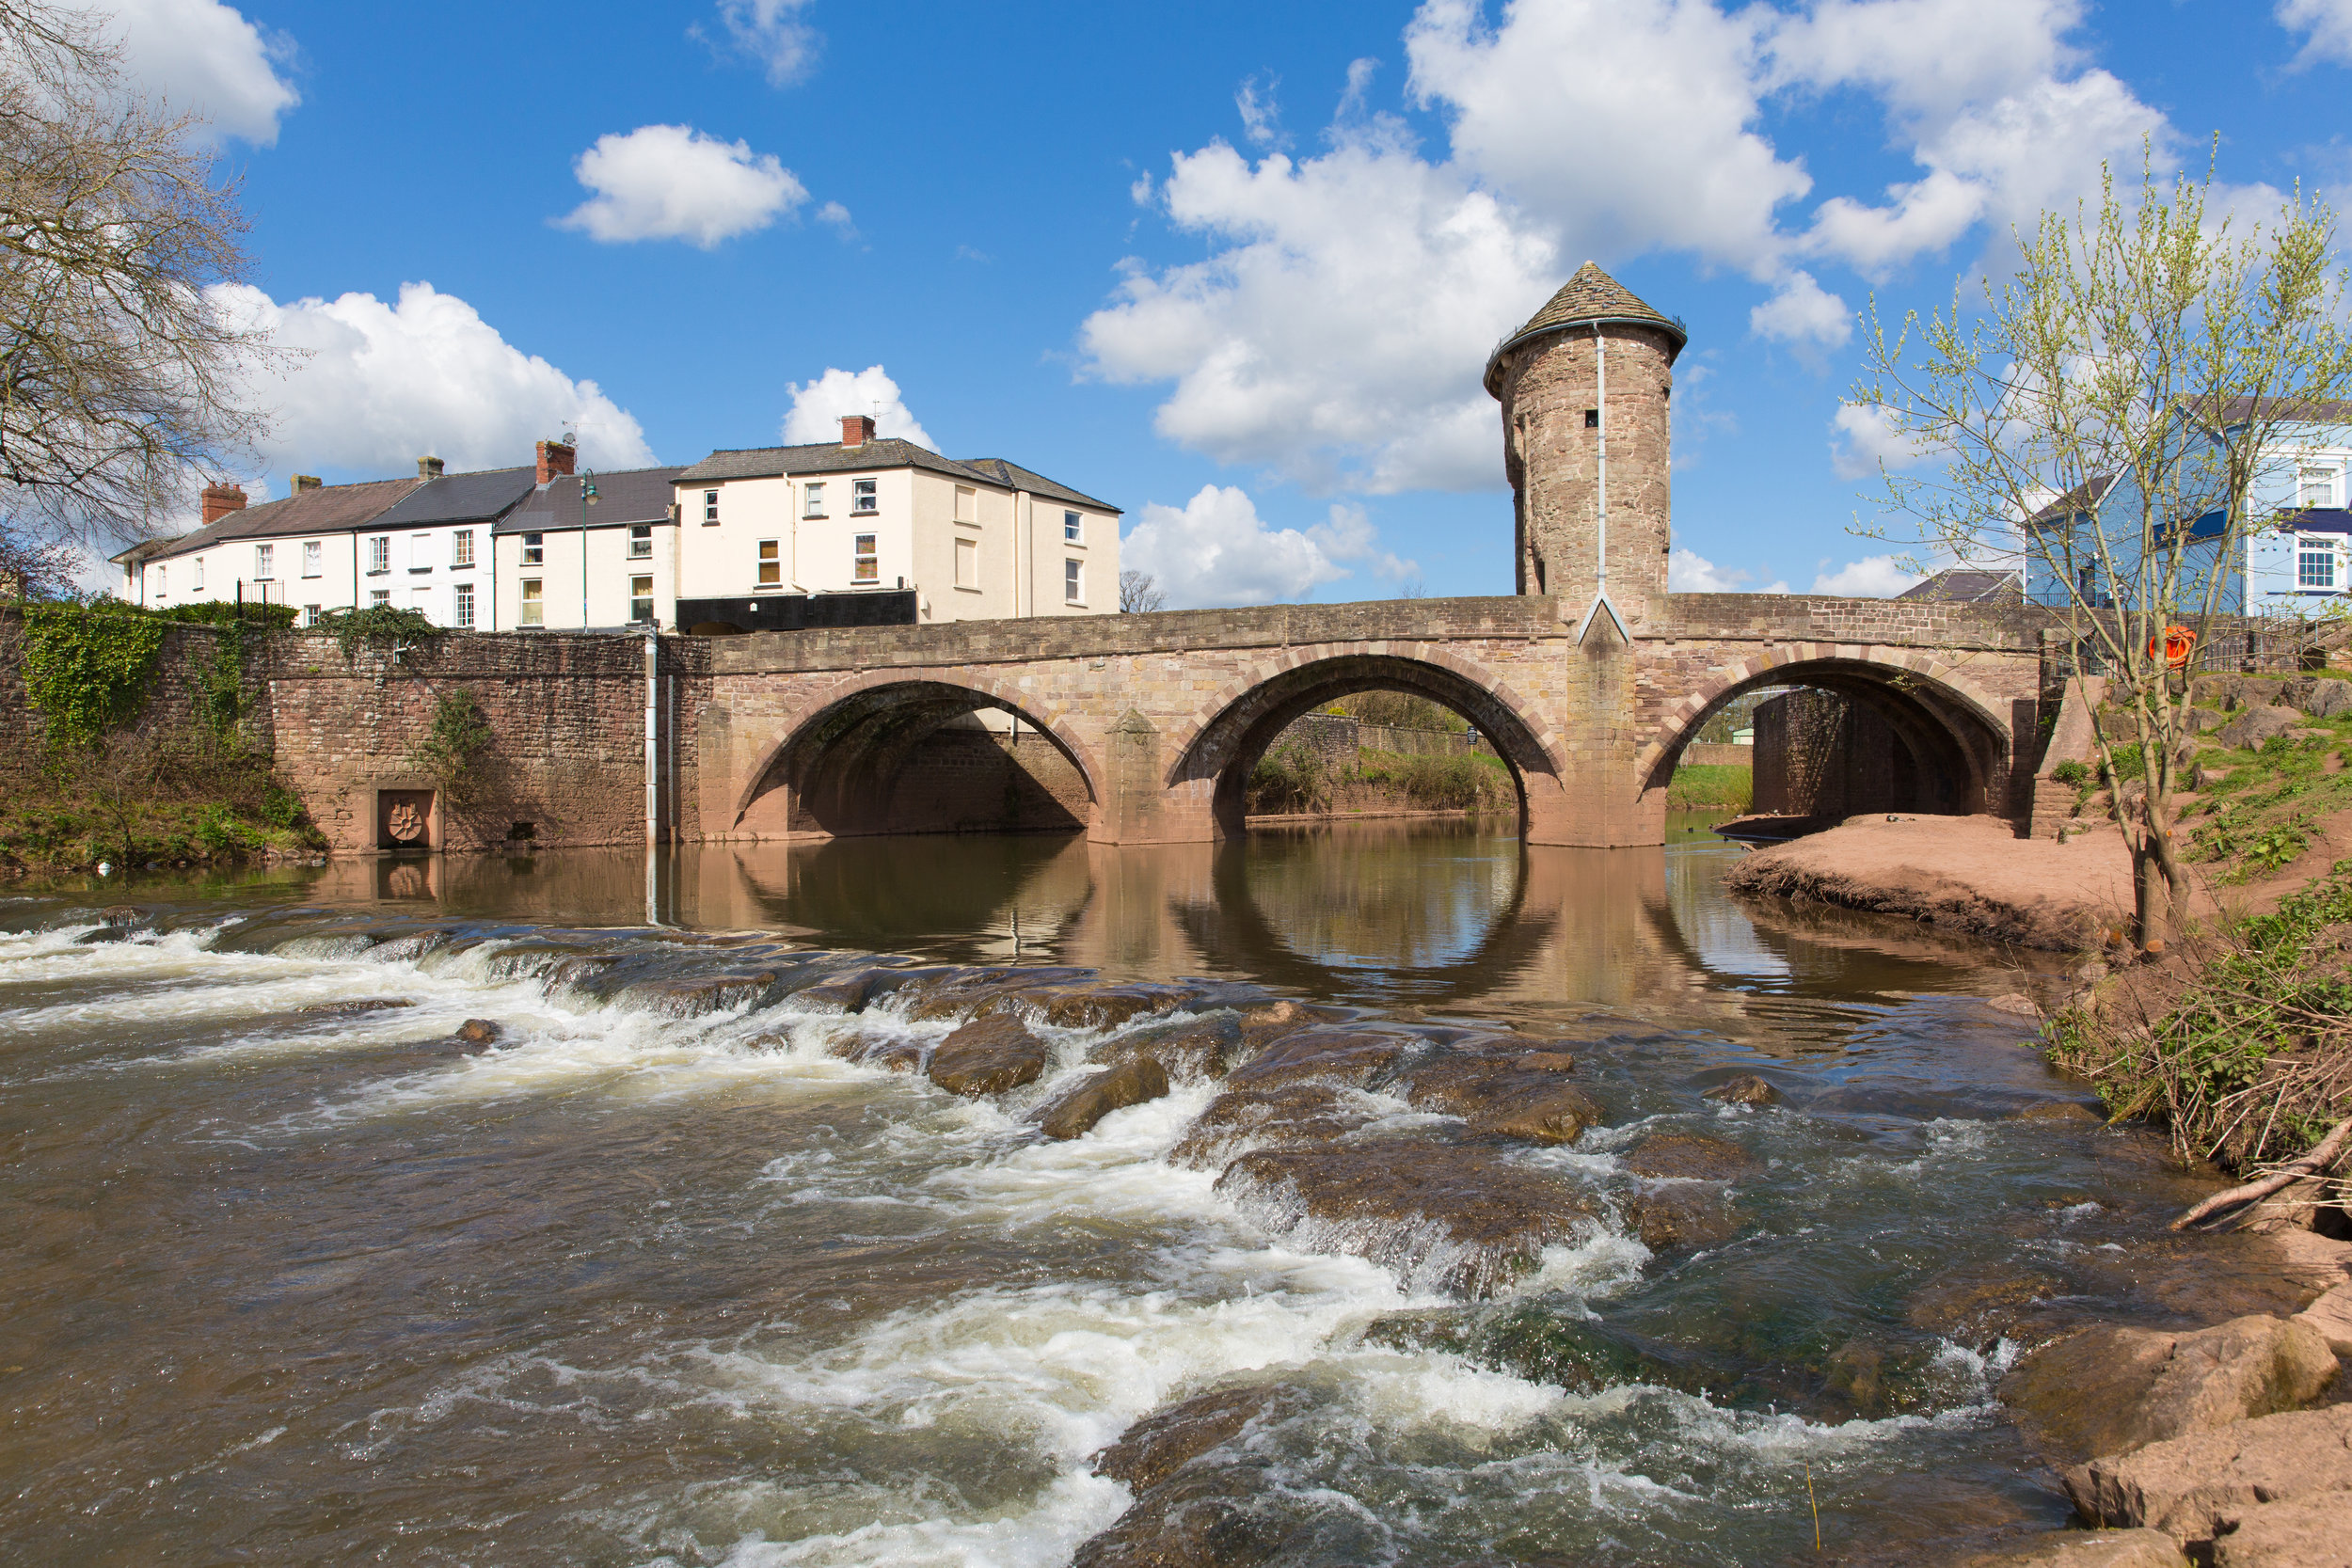 We serve the West & Wales from our office in lovely Monmouth